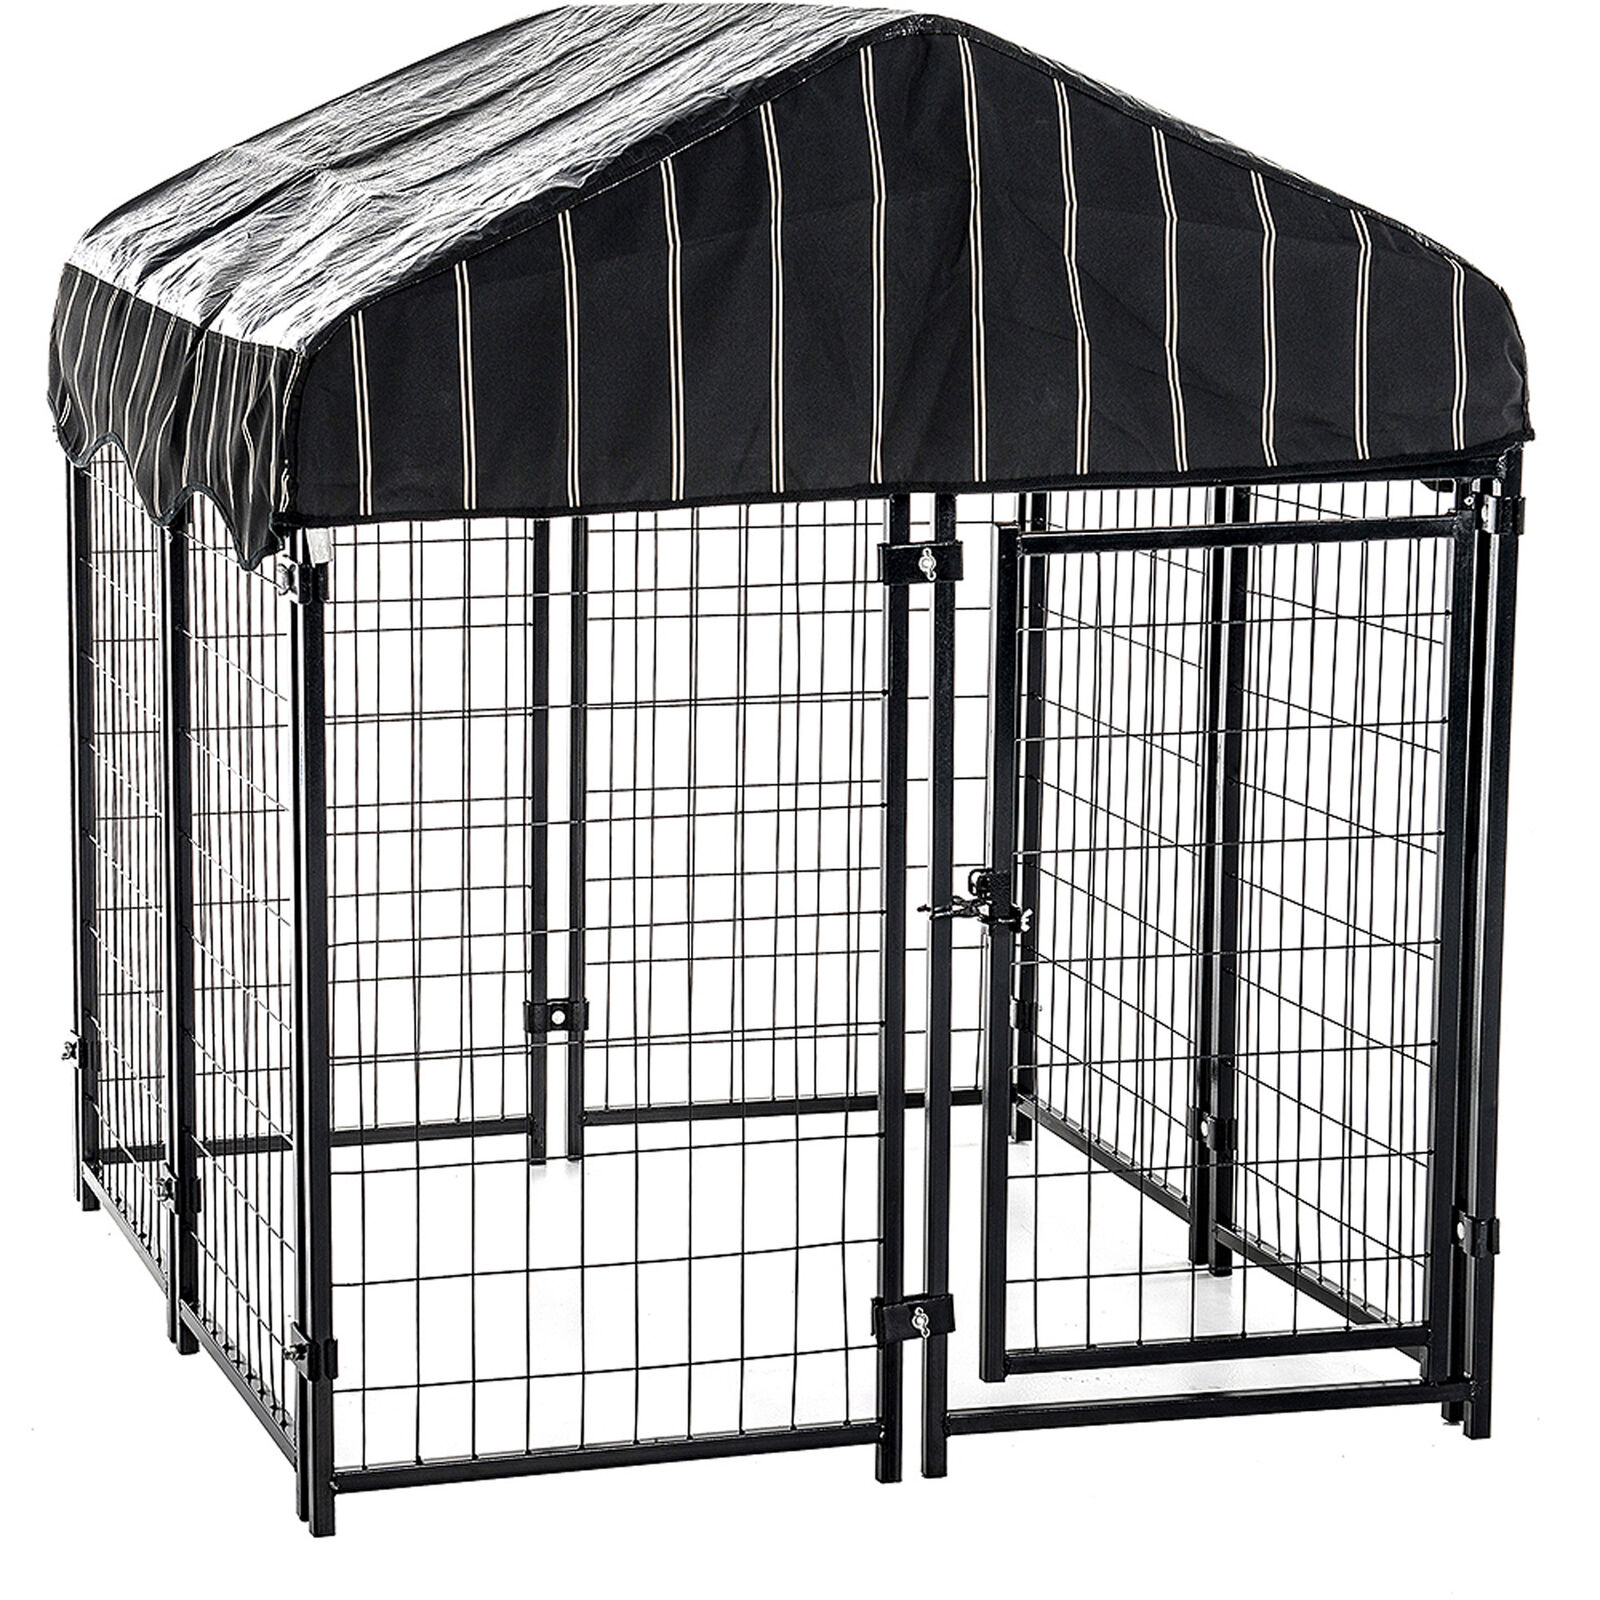 Outdoor Dog Kennel Shelter Fence Indoor Chain Link XXL Extra Large Dogs Cage